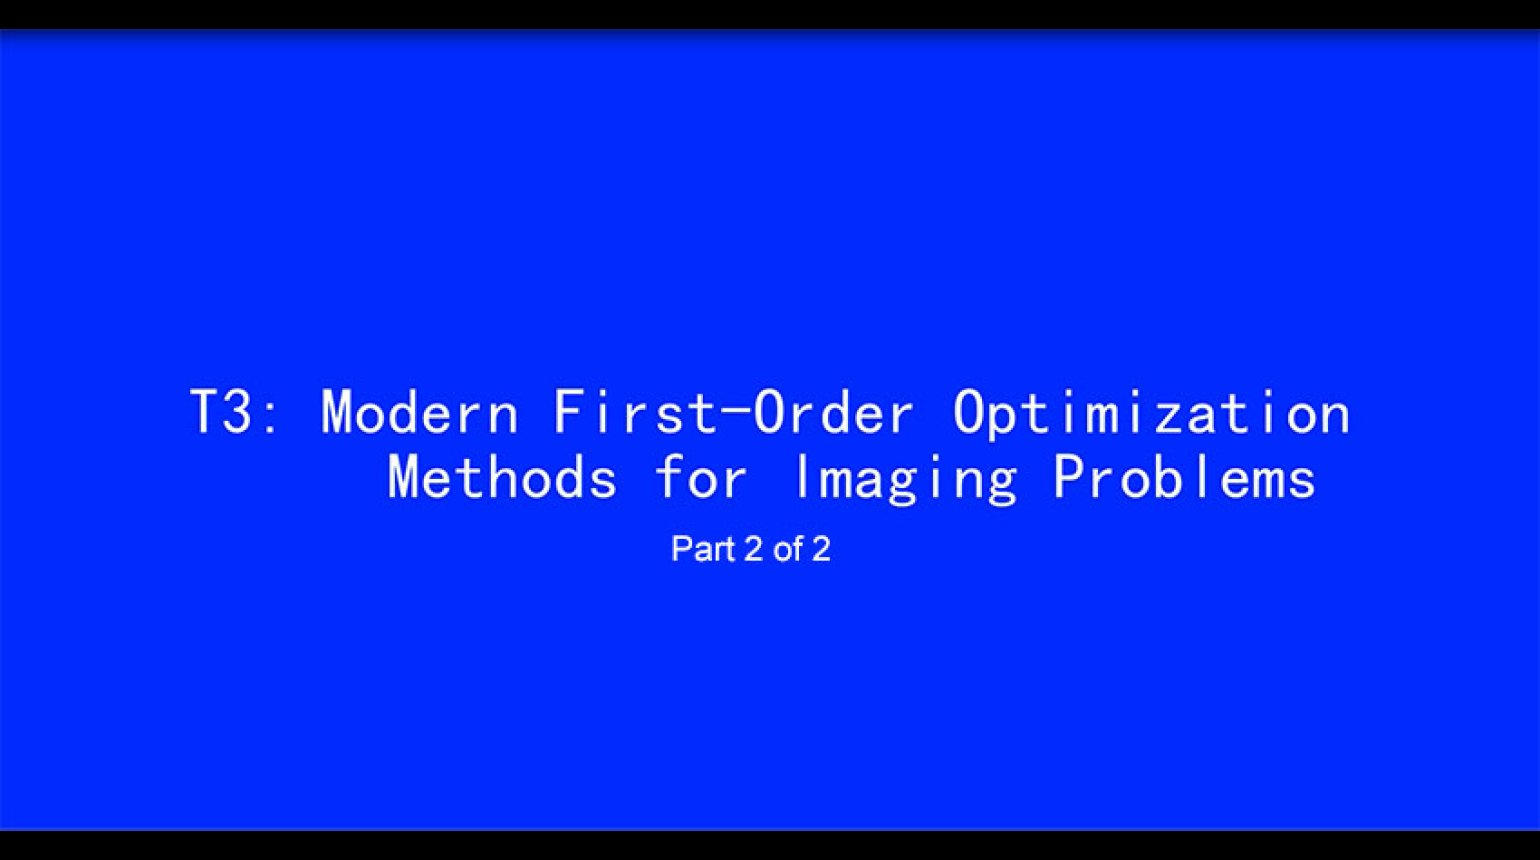 ICIP 2017 Tutorial - Modern First-Order Optimization Methods for Imaging Problems [Part 2 of 2]